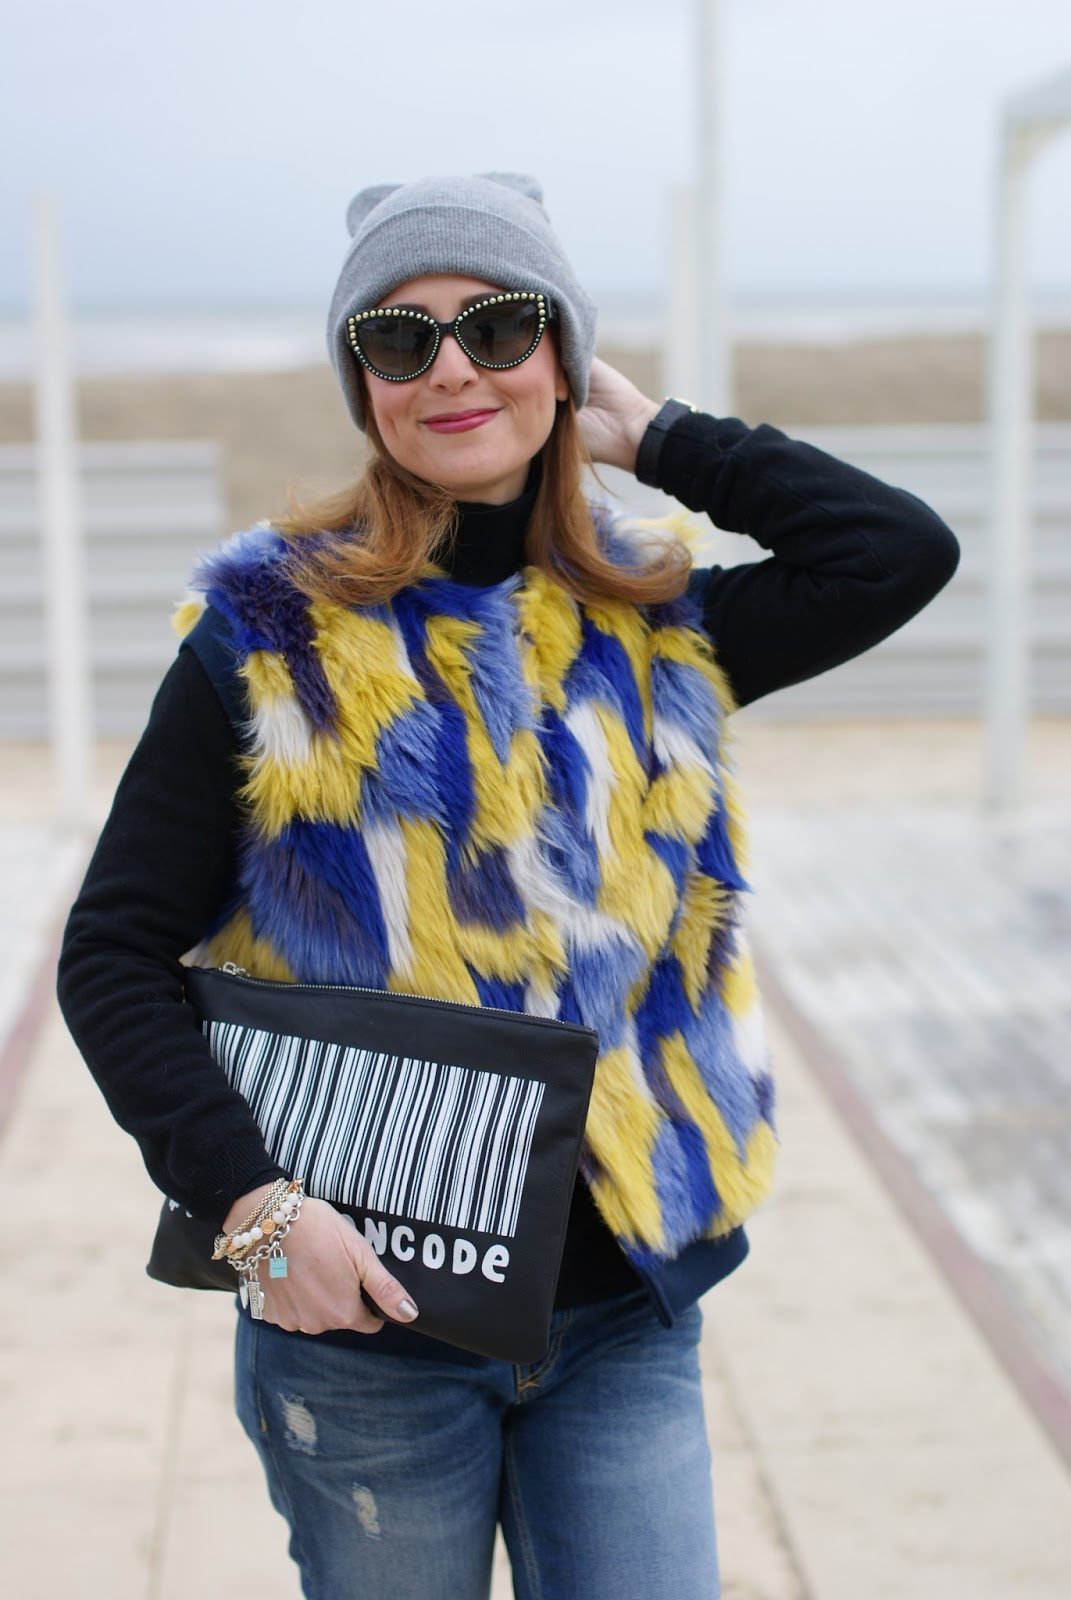 Moschino sunglasses, faux fur vest and cat ear beanie on Fashion and Cookies fashion blog, fashion blogger style